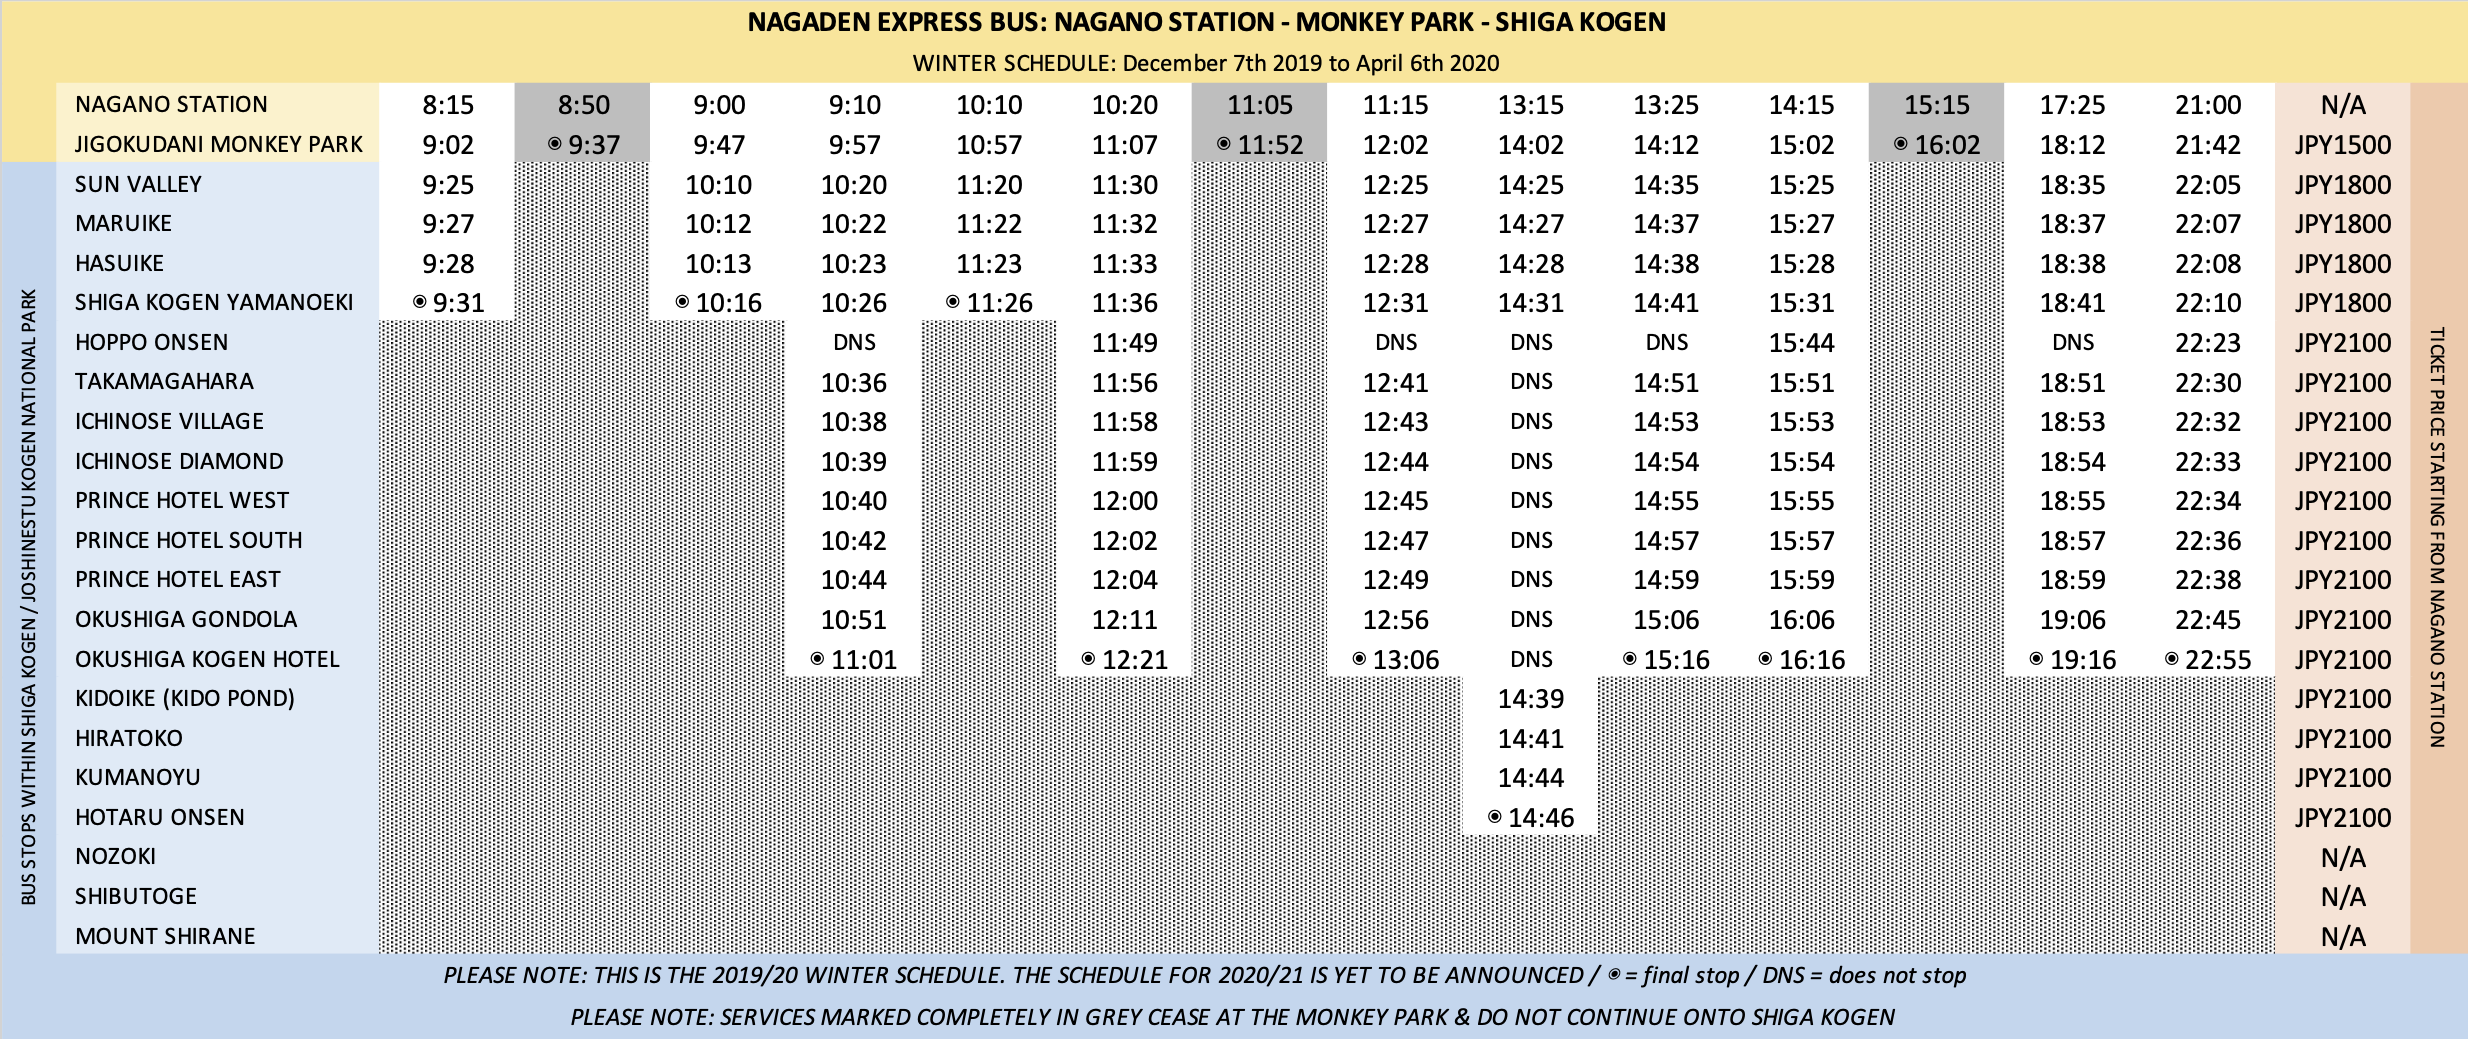 nagaden-shiga-kogen-express-winter-timetable